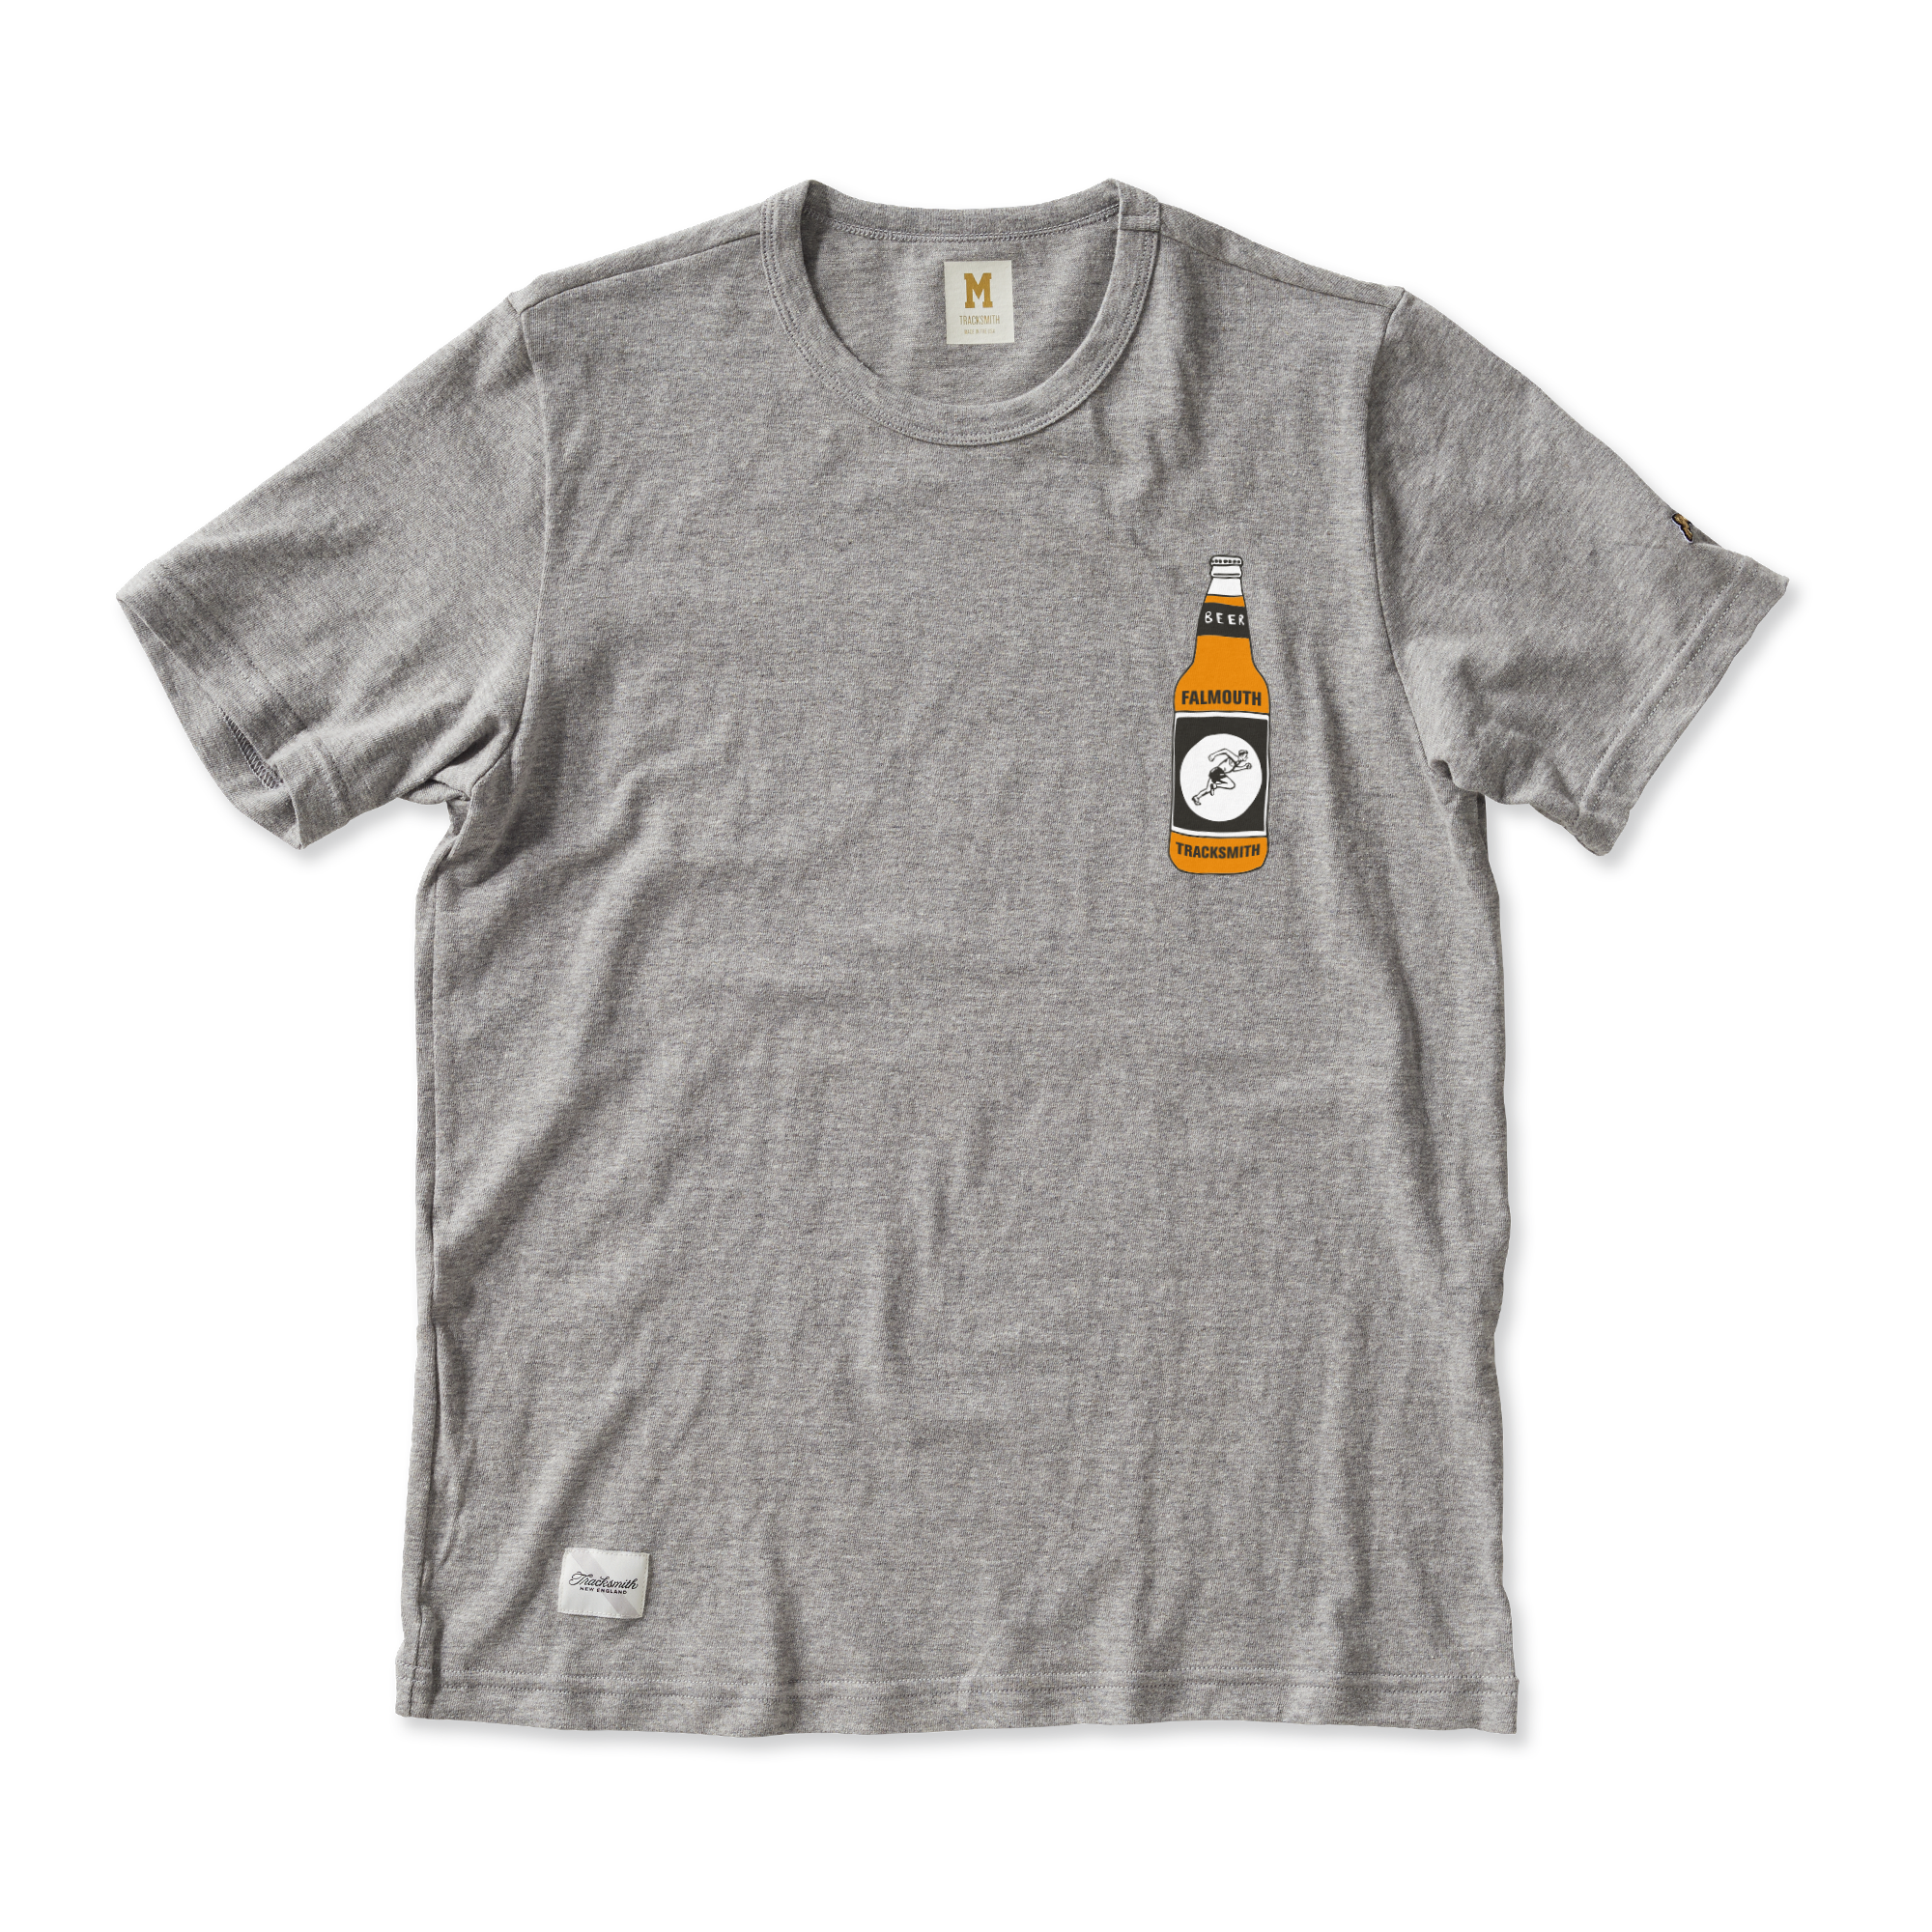 Road-Race-Tee-Mens-Grayboy-Falmouth.png#asset:14258